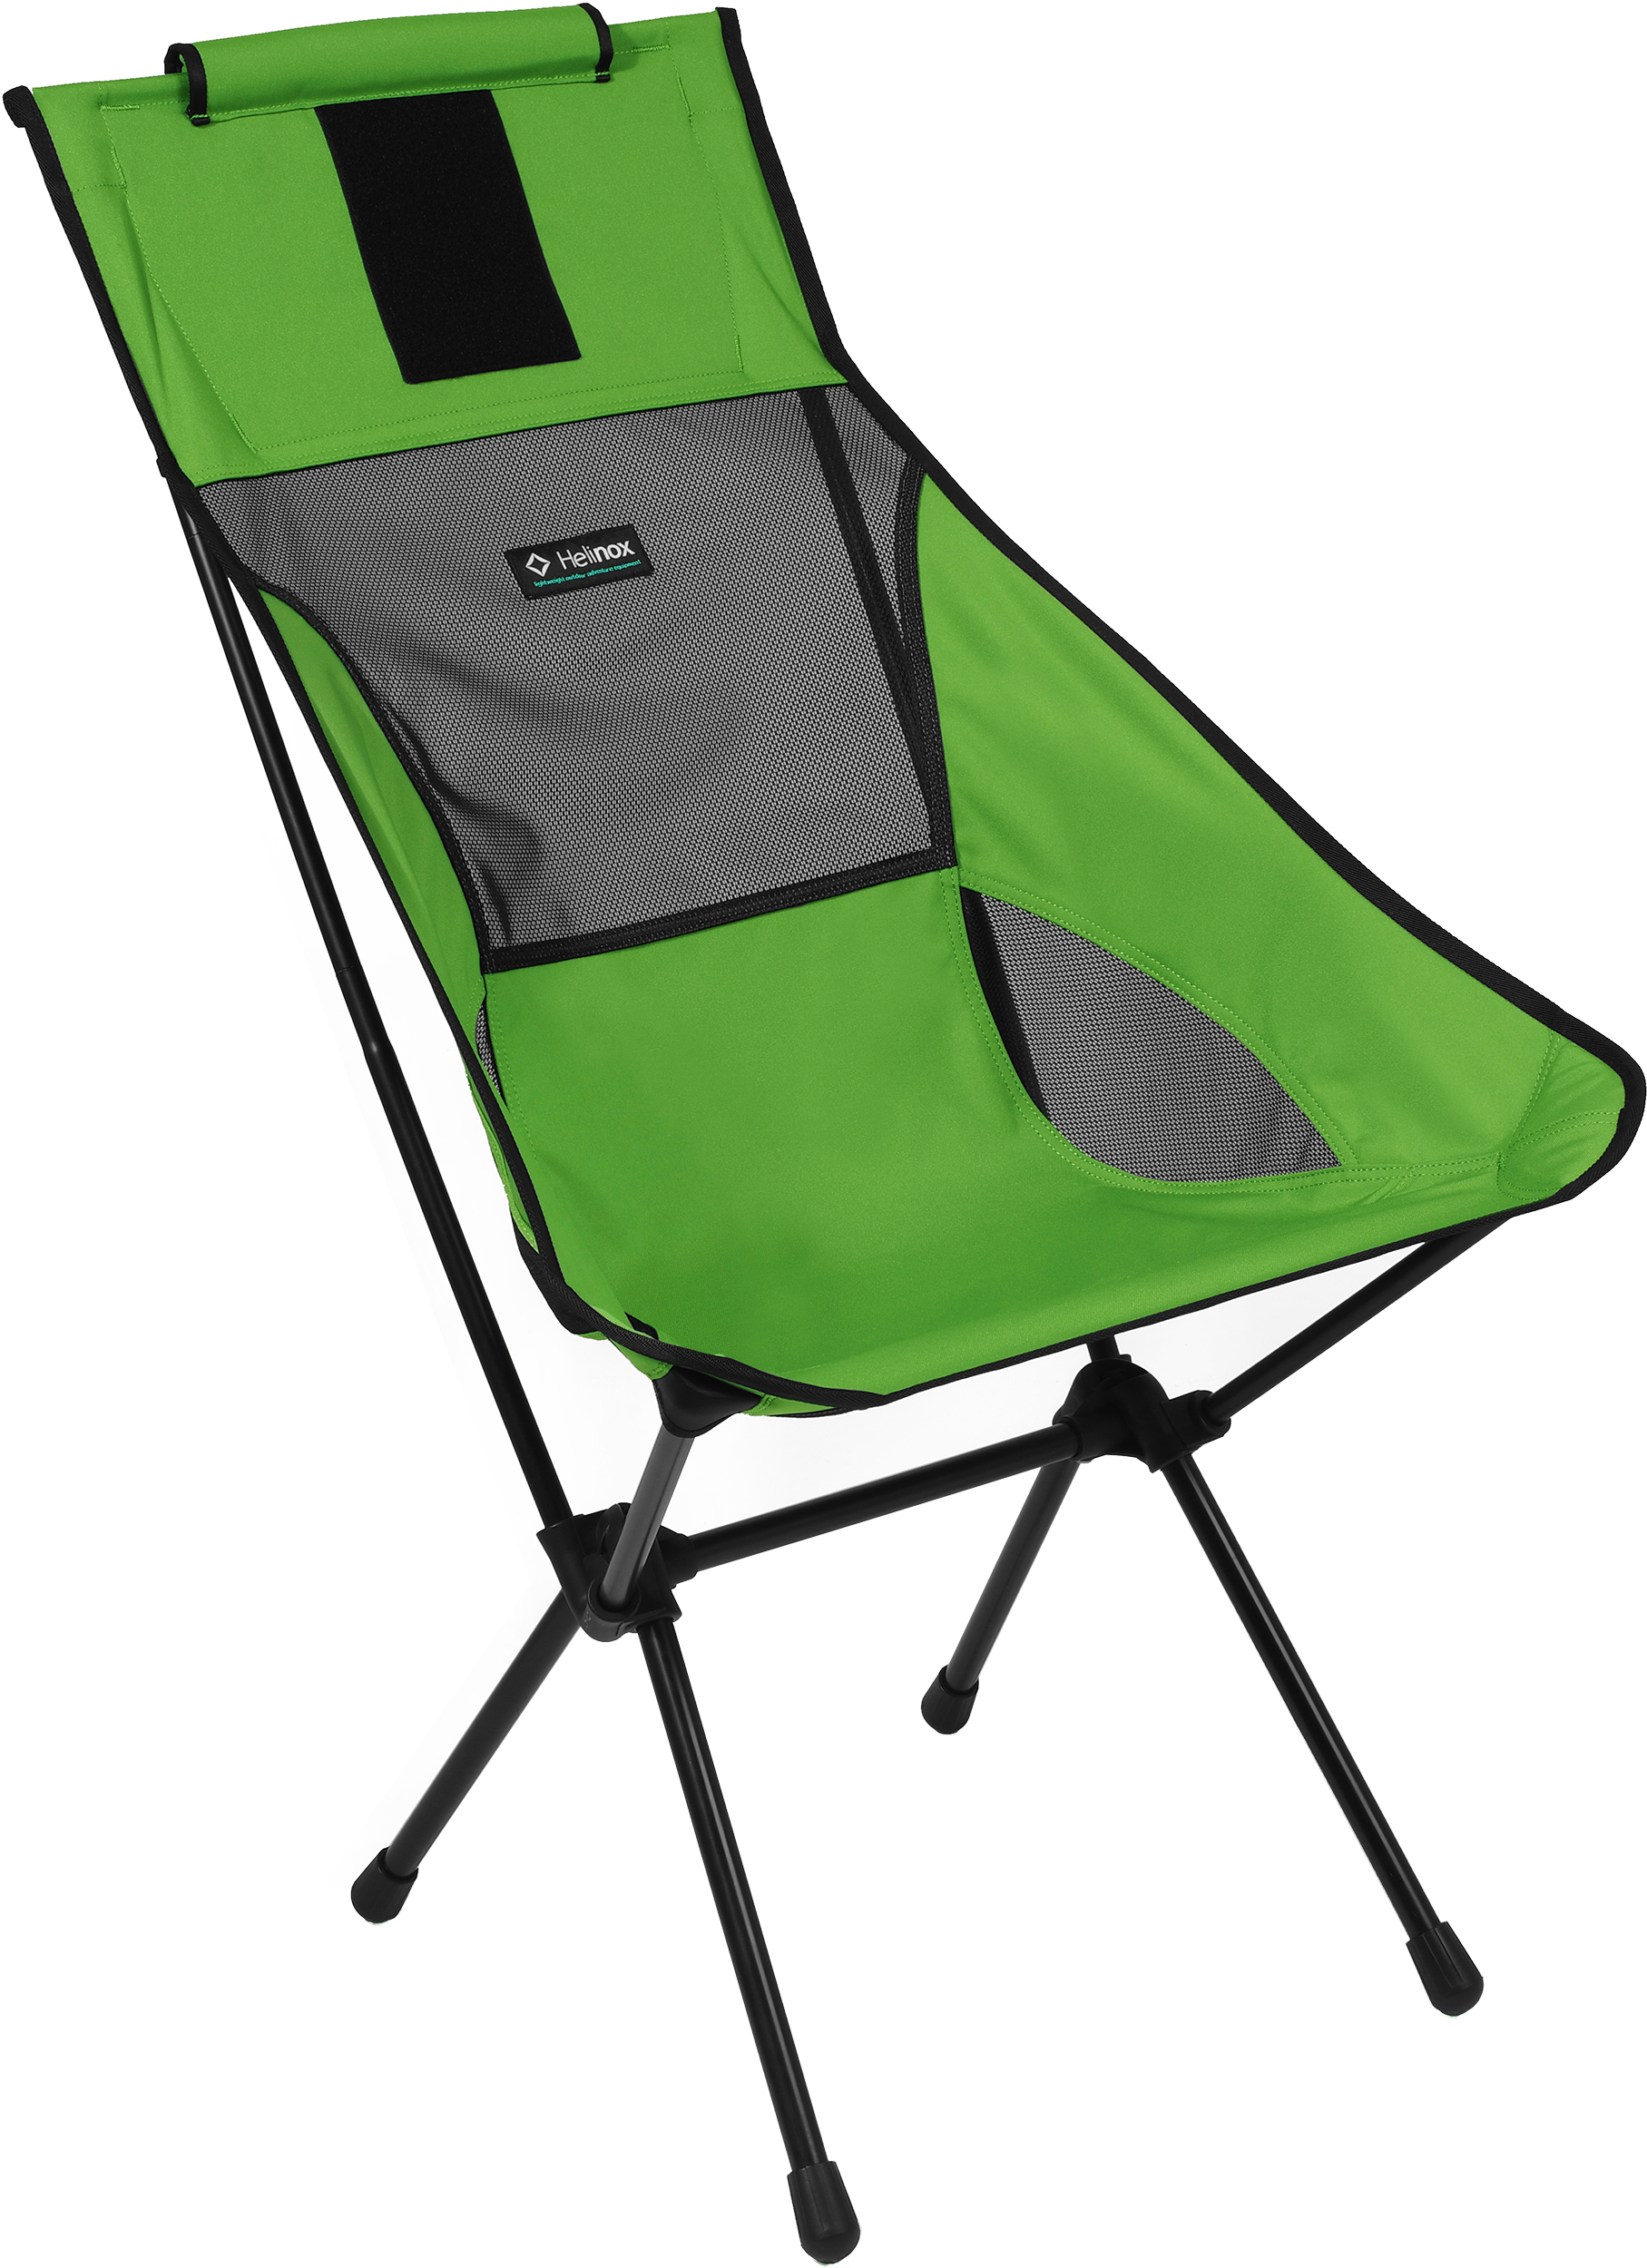 cot b brown foldable chair outdoor adjustable productdetail camping coleman